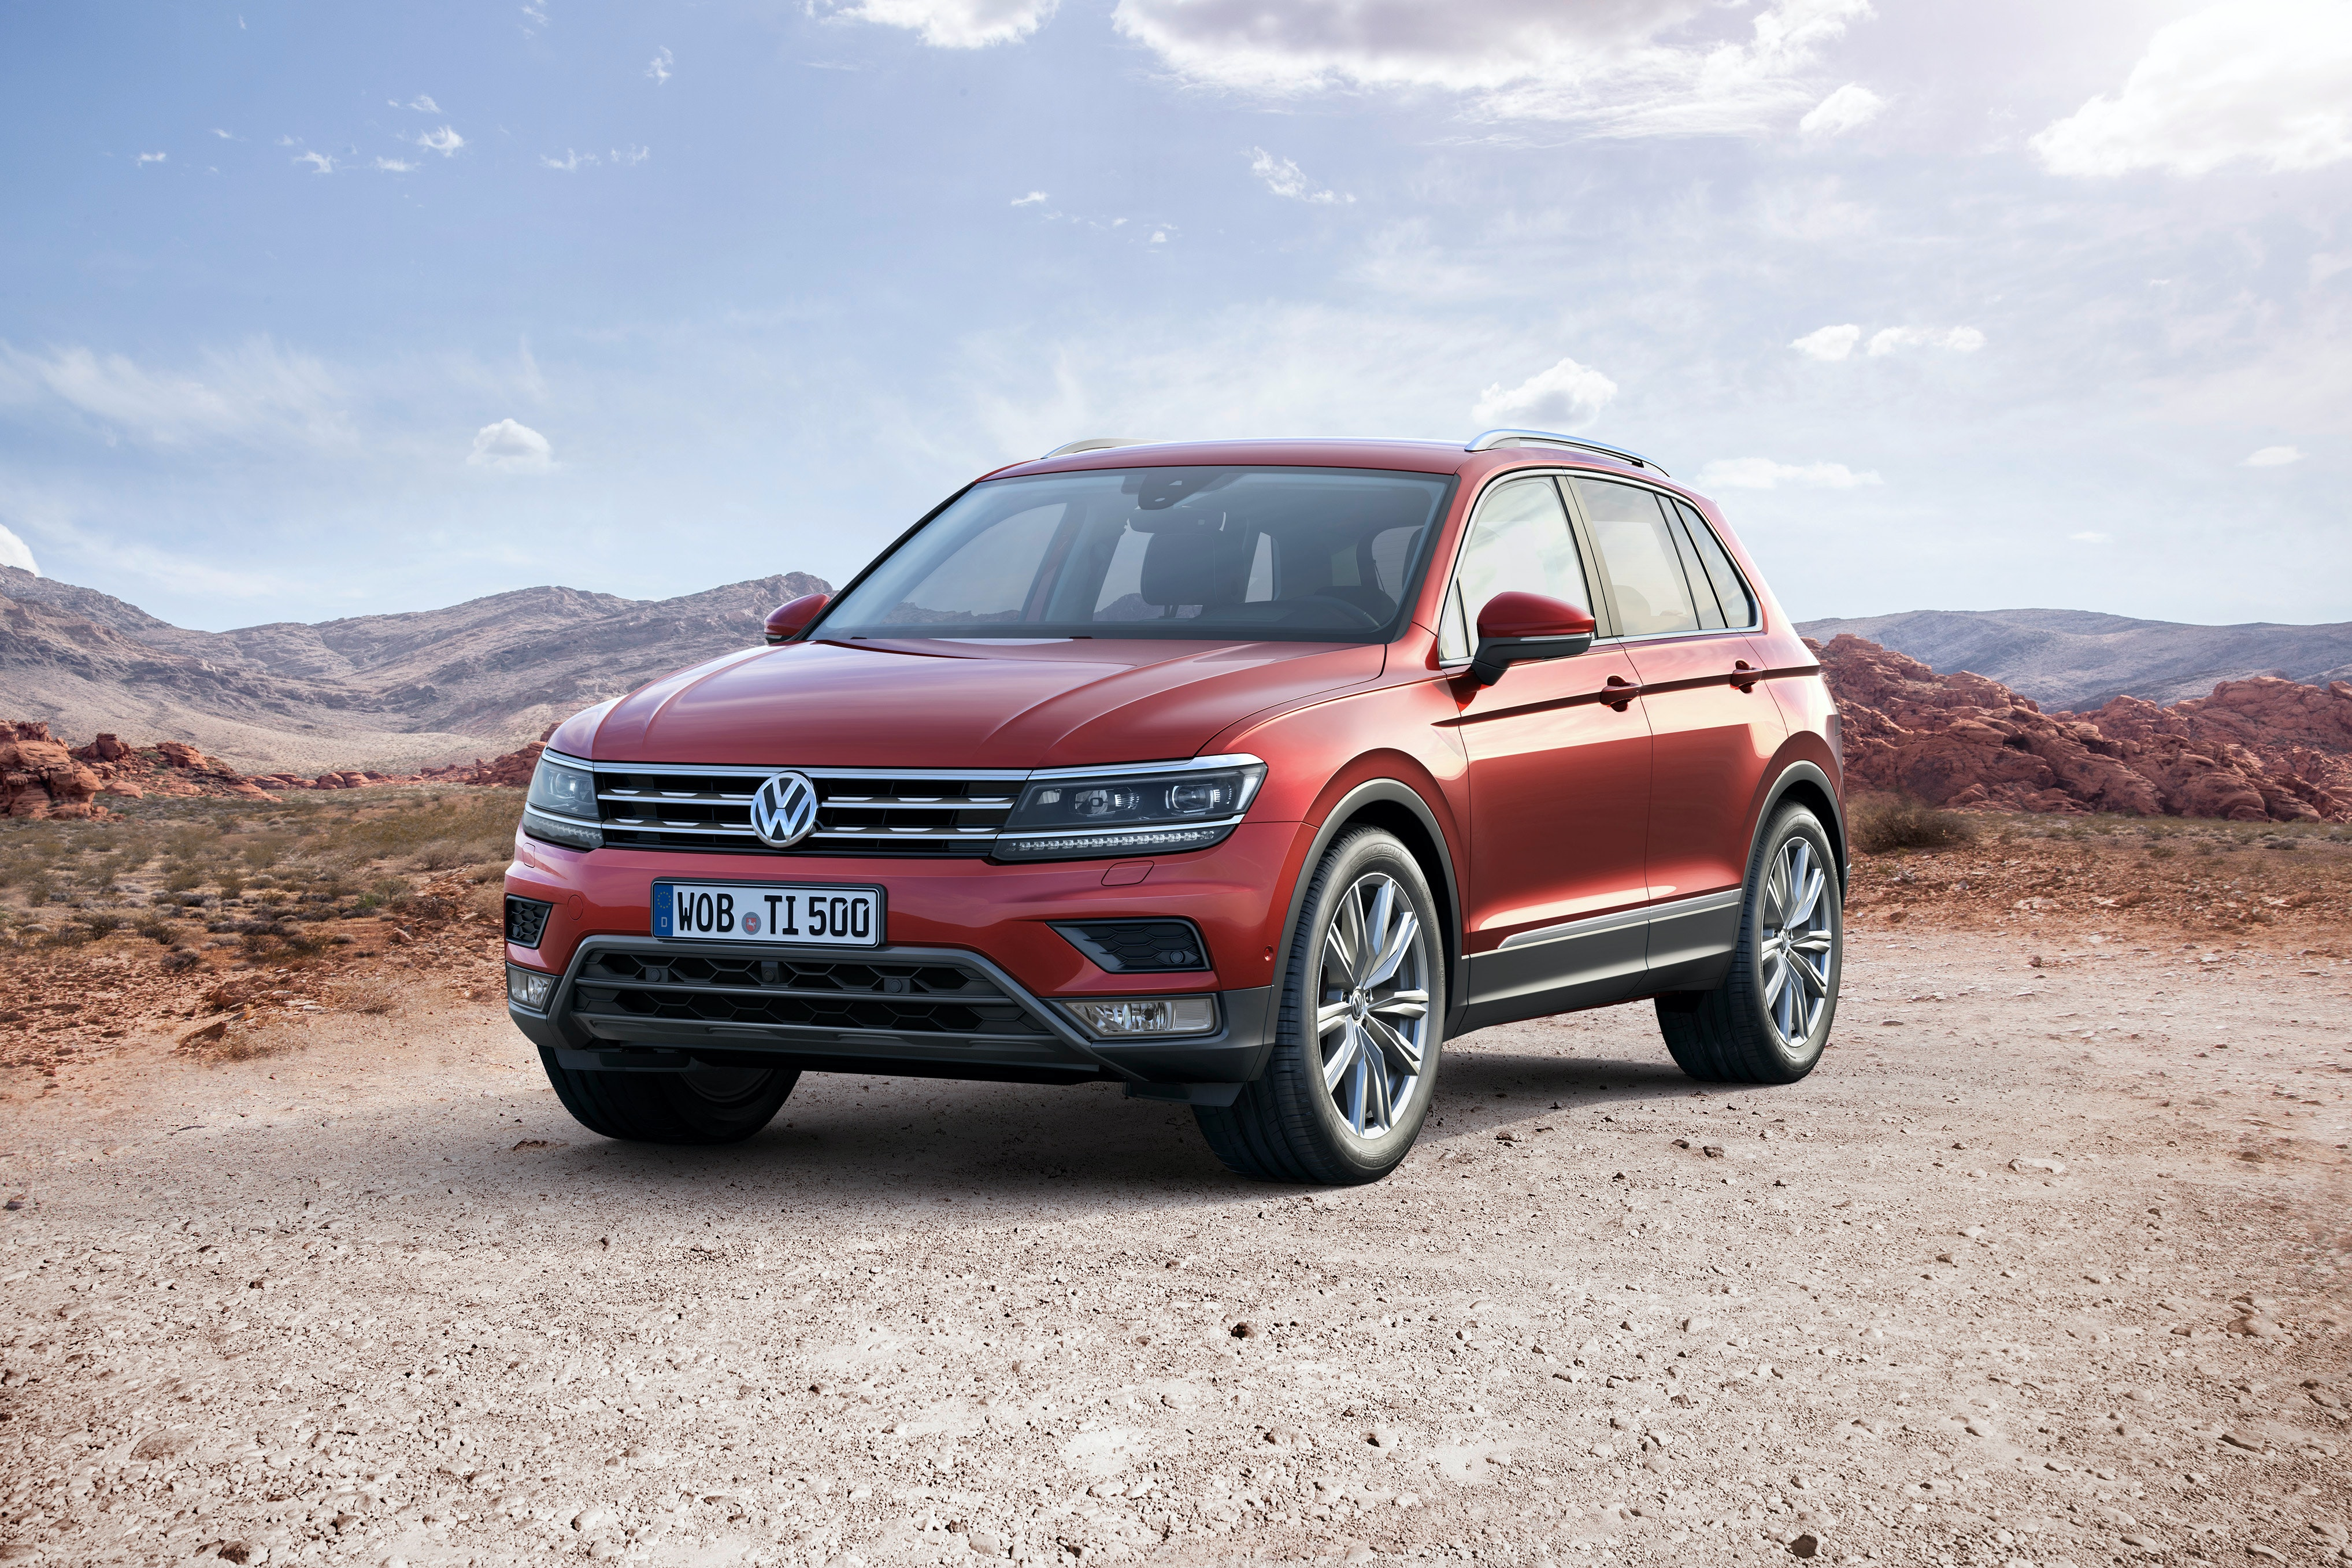 Vw tiguan ruby rot frontal.jpg?ixlib=rb 1.1